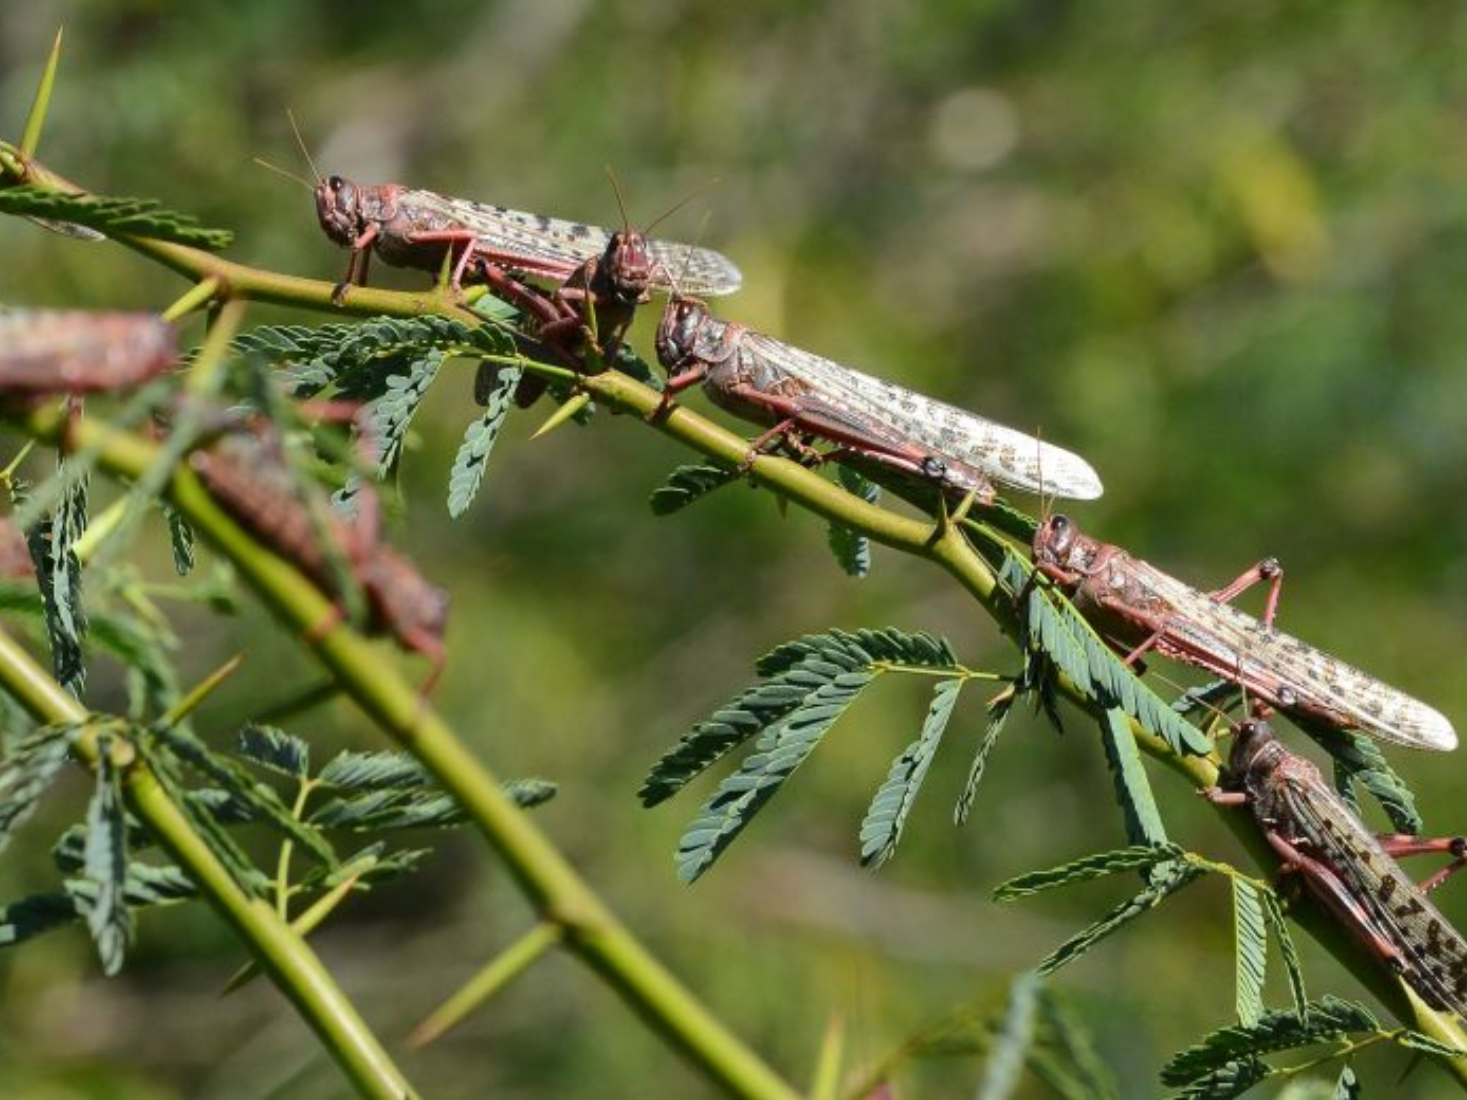 Dreadful swarm of 'Desert Locust' leaves back huge crops loss in India